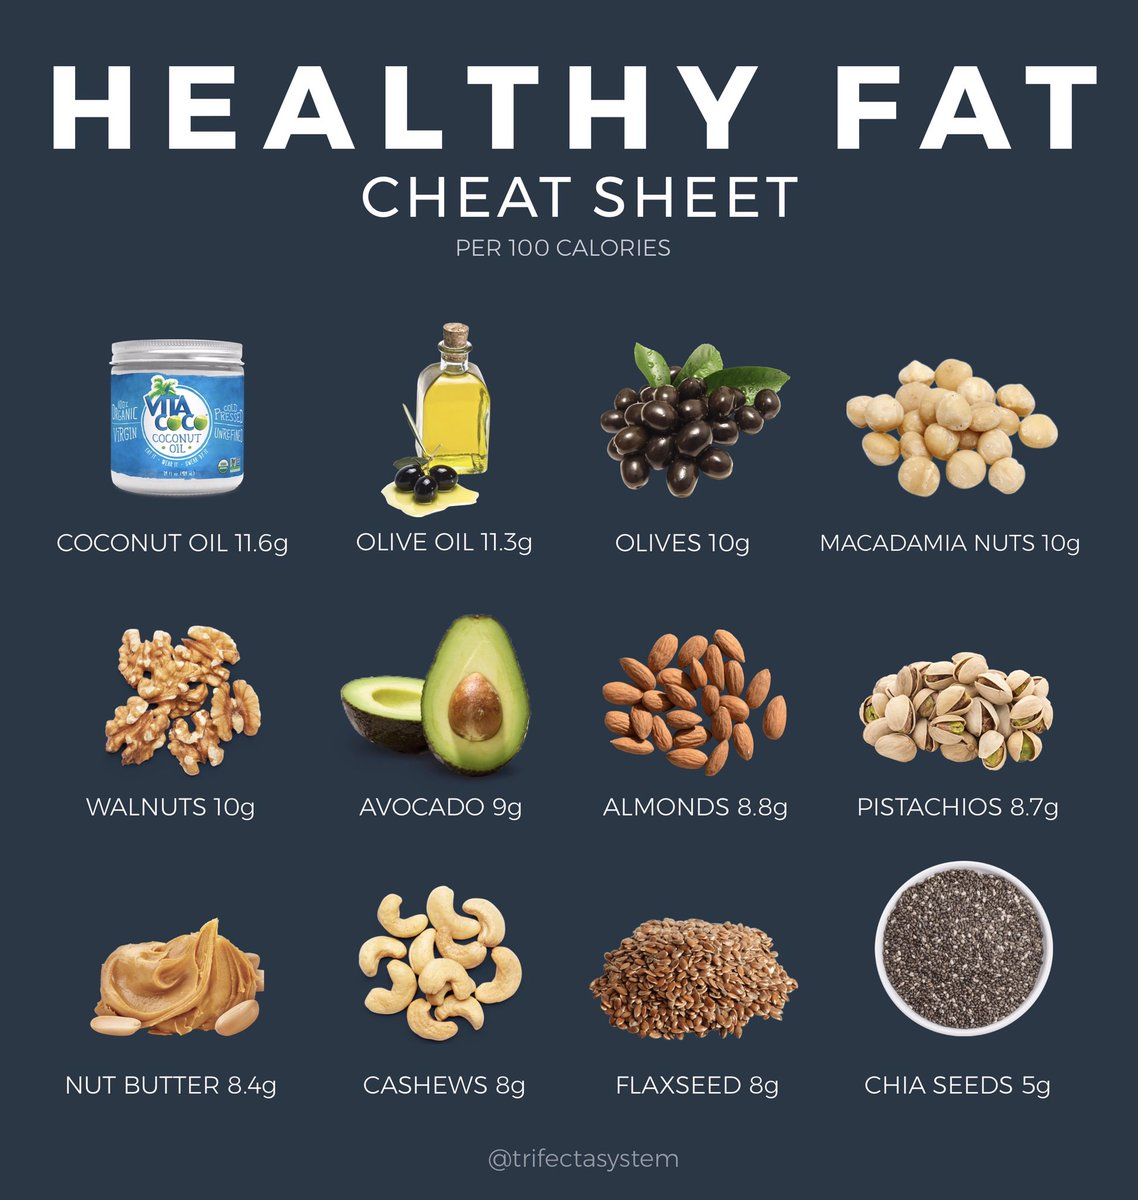 Since fat is the most calorically dense of the three macronutrients (and all the rave right now with the #Keto diet), this sheet gives a breakdown of the most fat dense items per 100 #calories. Learn about the popular high-fat / low-carb diet (Keto) here: https://www.trifectanutrition.com/blog/how-to-get-into-ketosis-tips-backed-by-science…